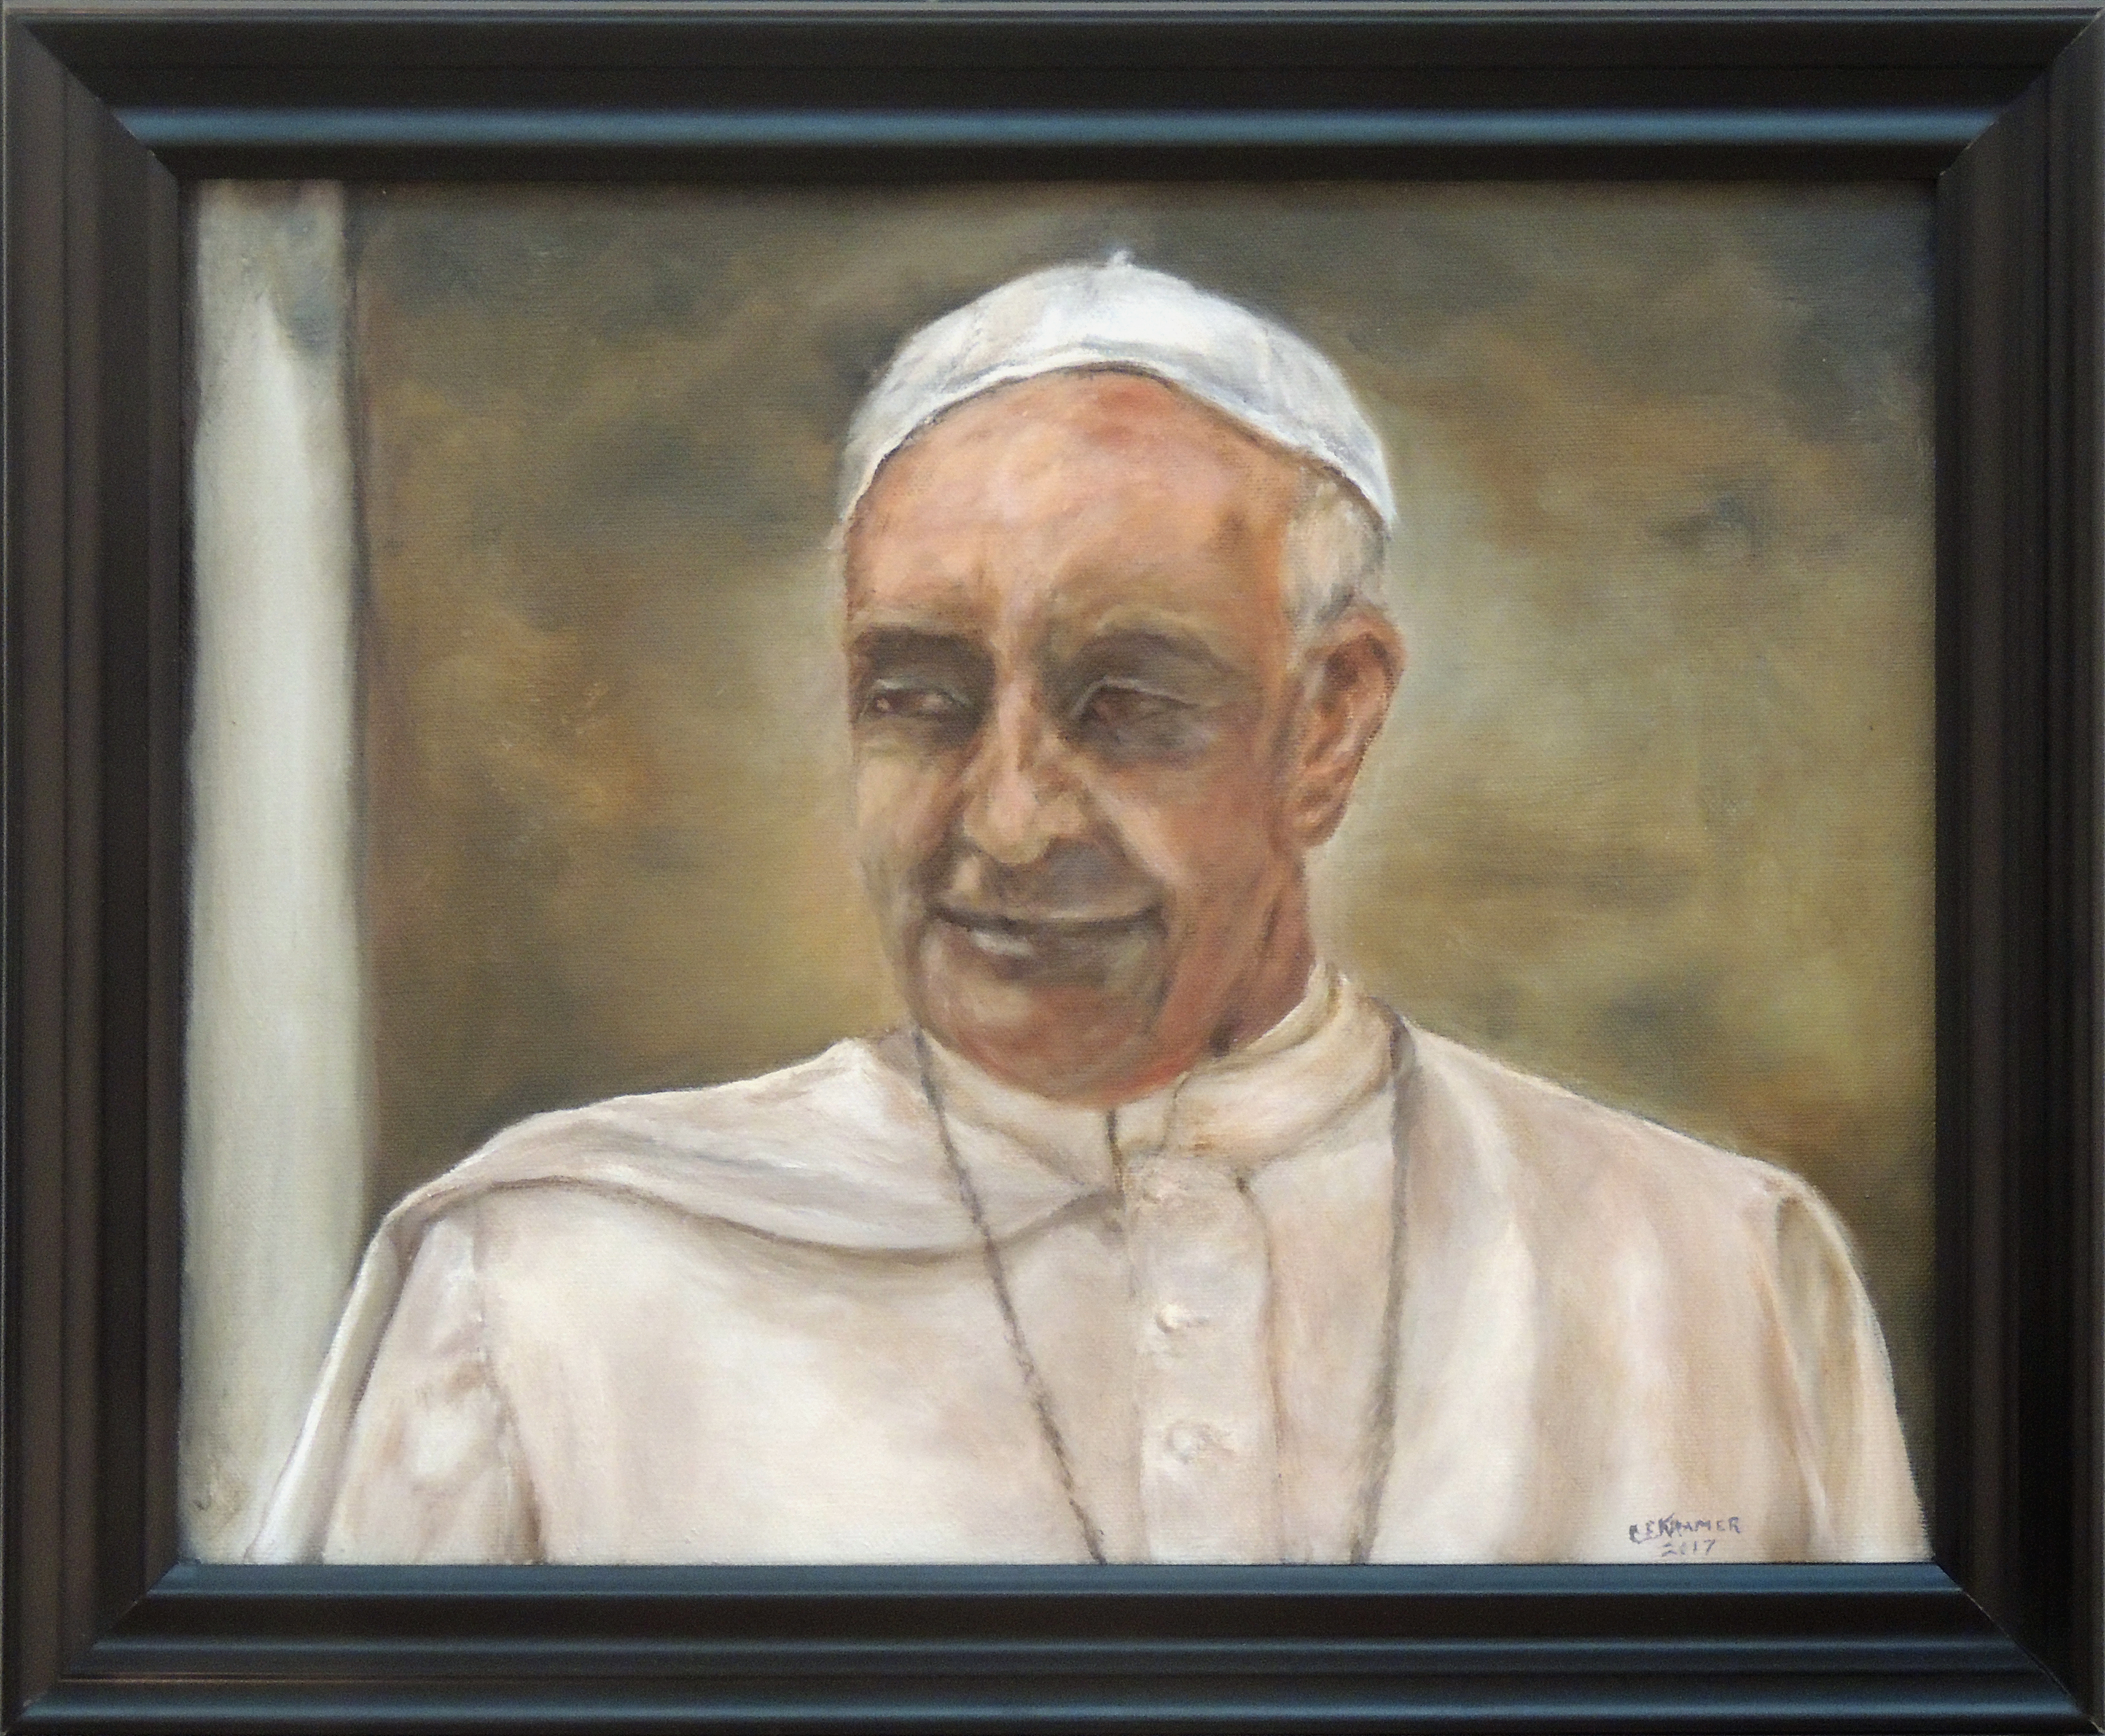 Catherine Kramer | POPE FRANCIS…JUST LOOKING | Oil